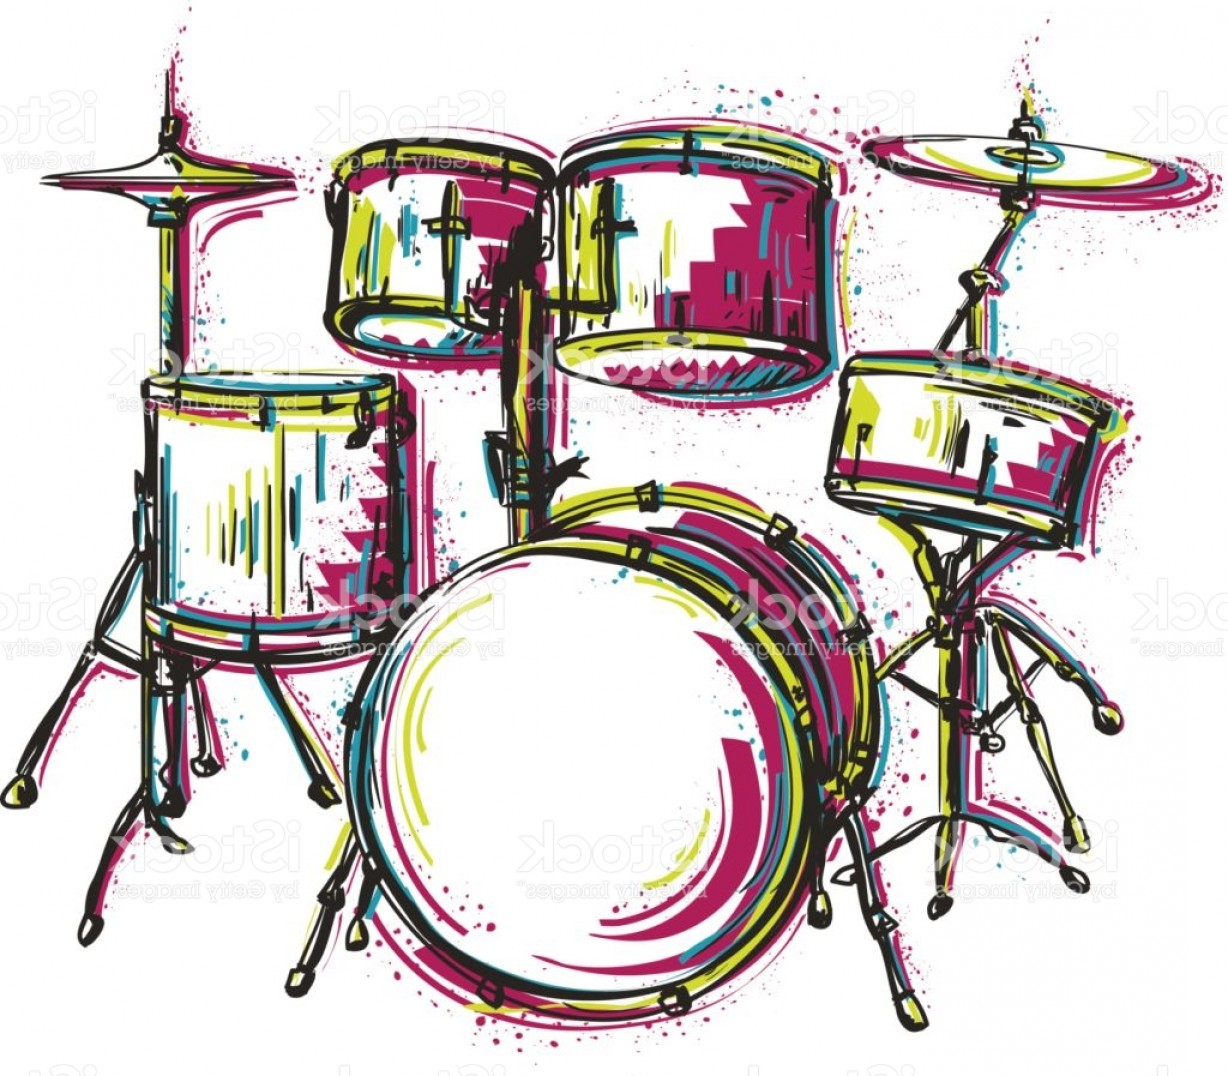 Drum Vector Art: Drum Kit With Splashes In Watercolor Style Gm